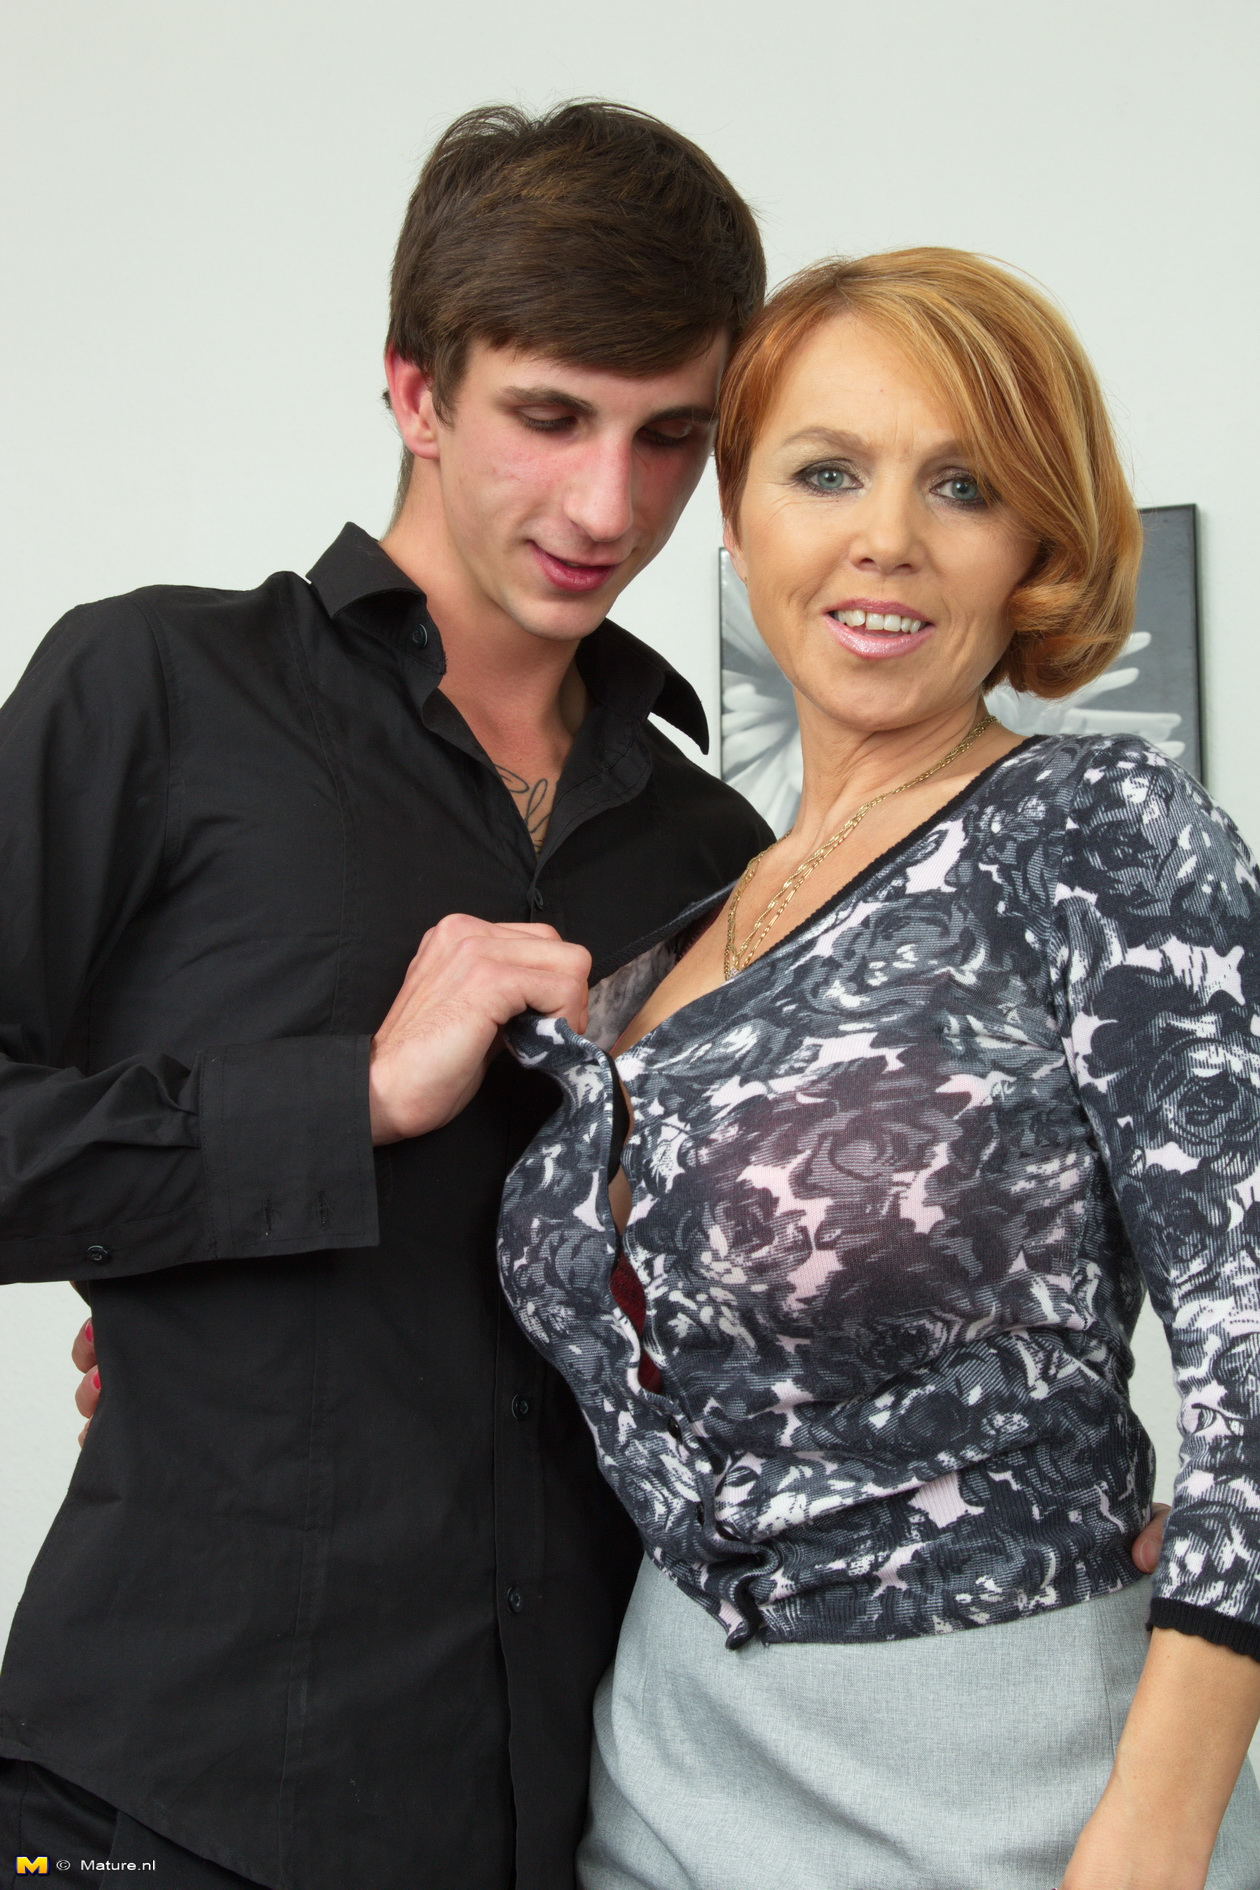 Milf with younger boy on real homemade